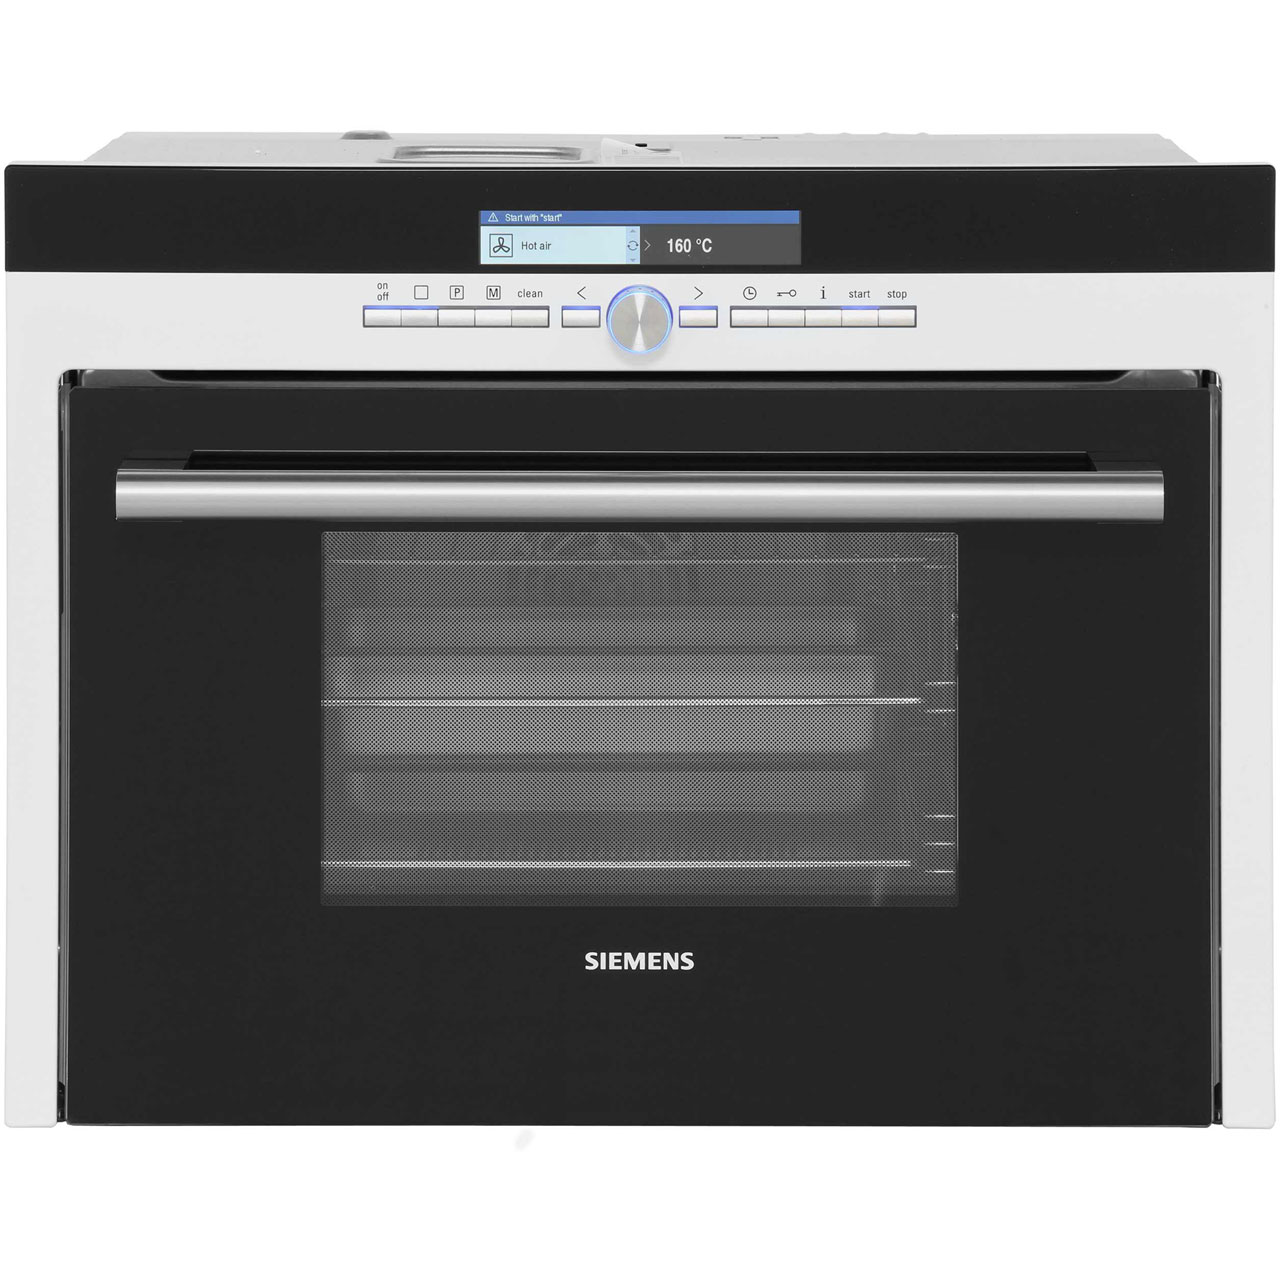 Siemens Iq 700 Hb36d275b Built In Compact Steam Oven White